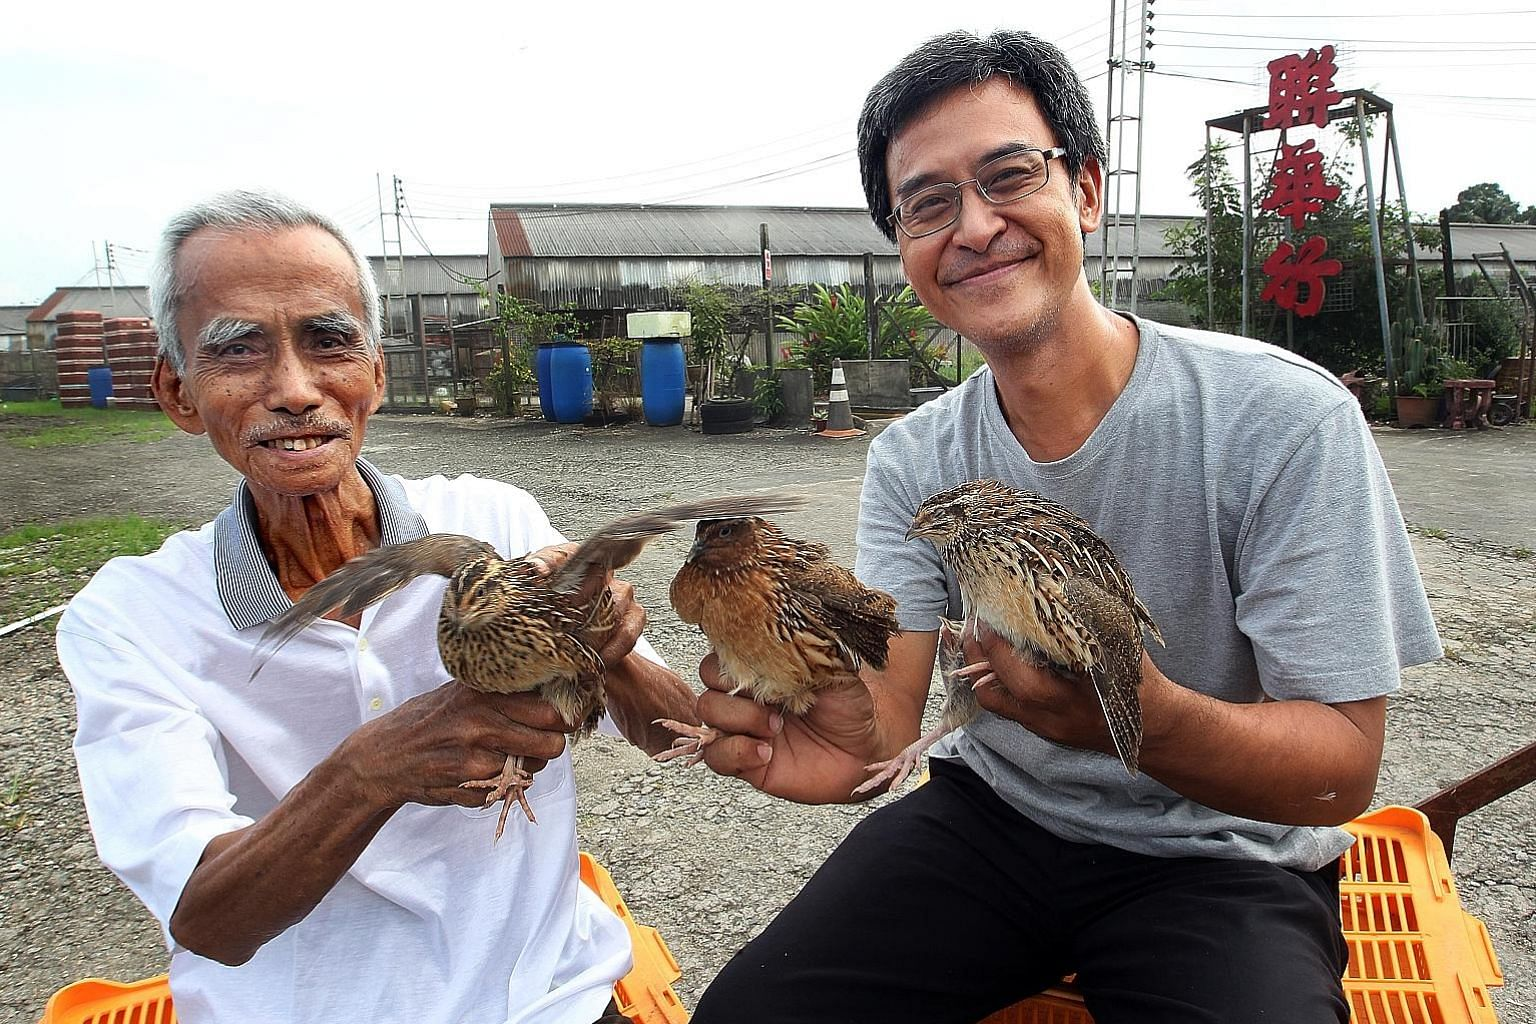 Mr Ho Seng Choon in earlier days with his youngest son William Ho, at their farm in Lim Chu Kang which specialises in quails.